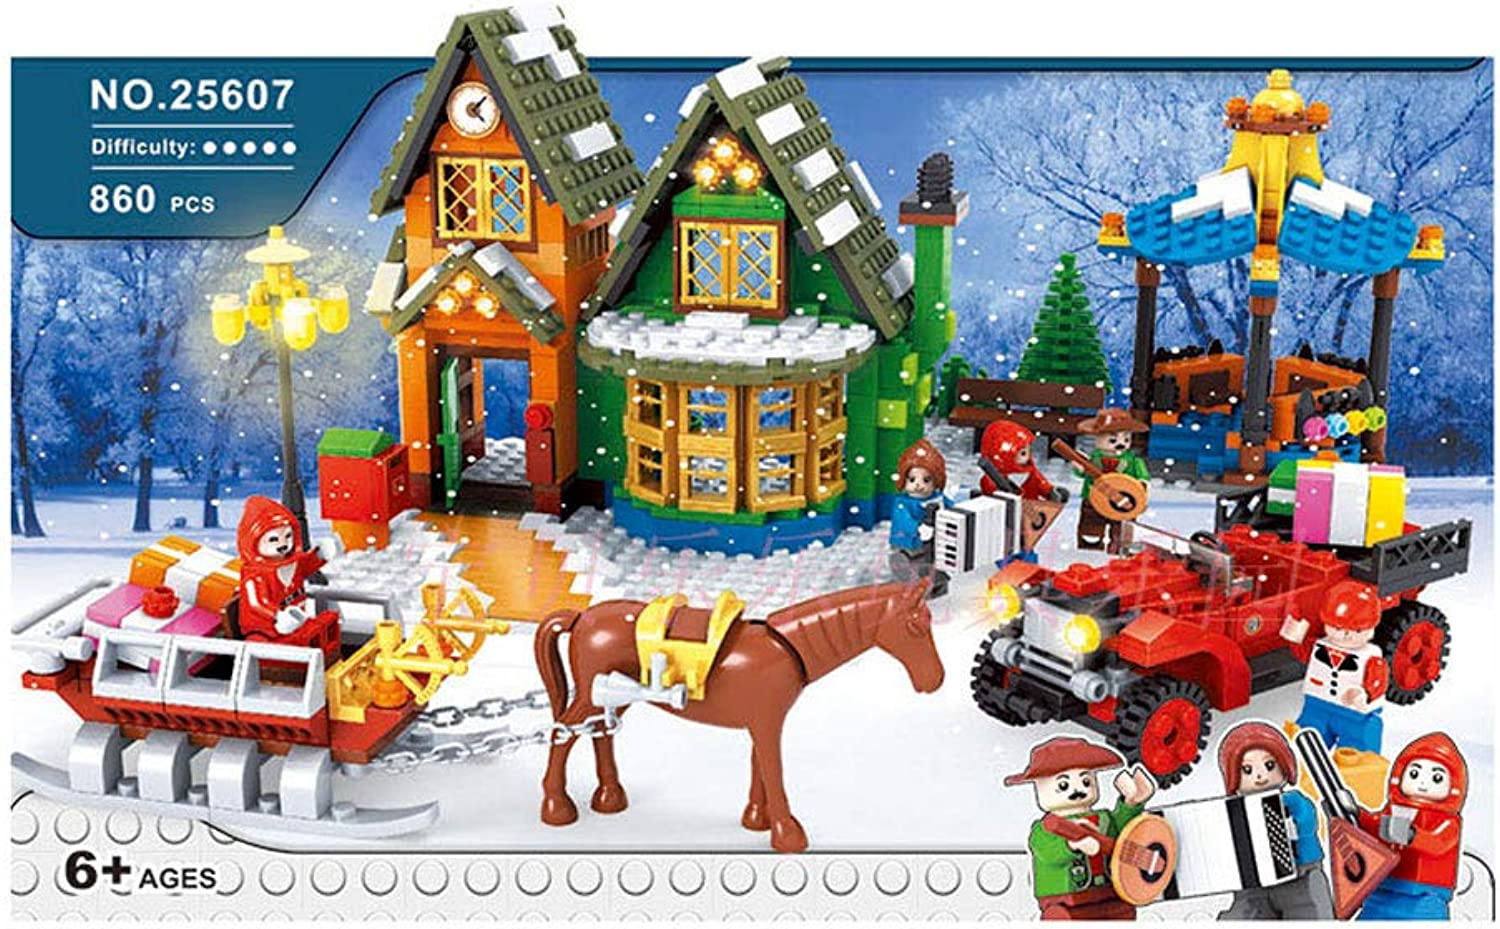 WDXIN Christmas Theme Post Office Building Block Puzzle Assembling Snow House Resort Suitable For Boys And Girls Over 6 Years Old Assembling 860 Pieces Of Building Blocks